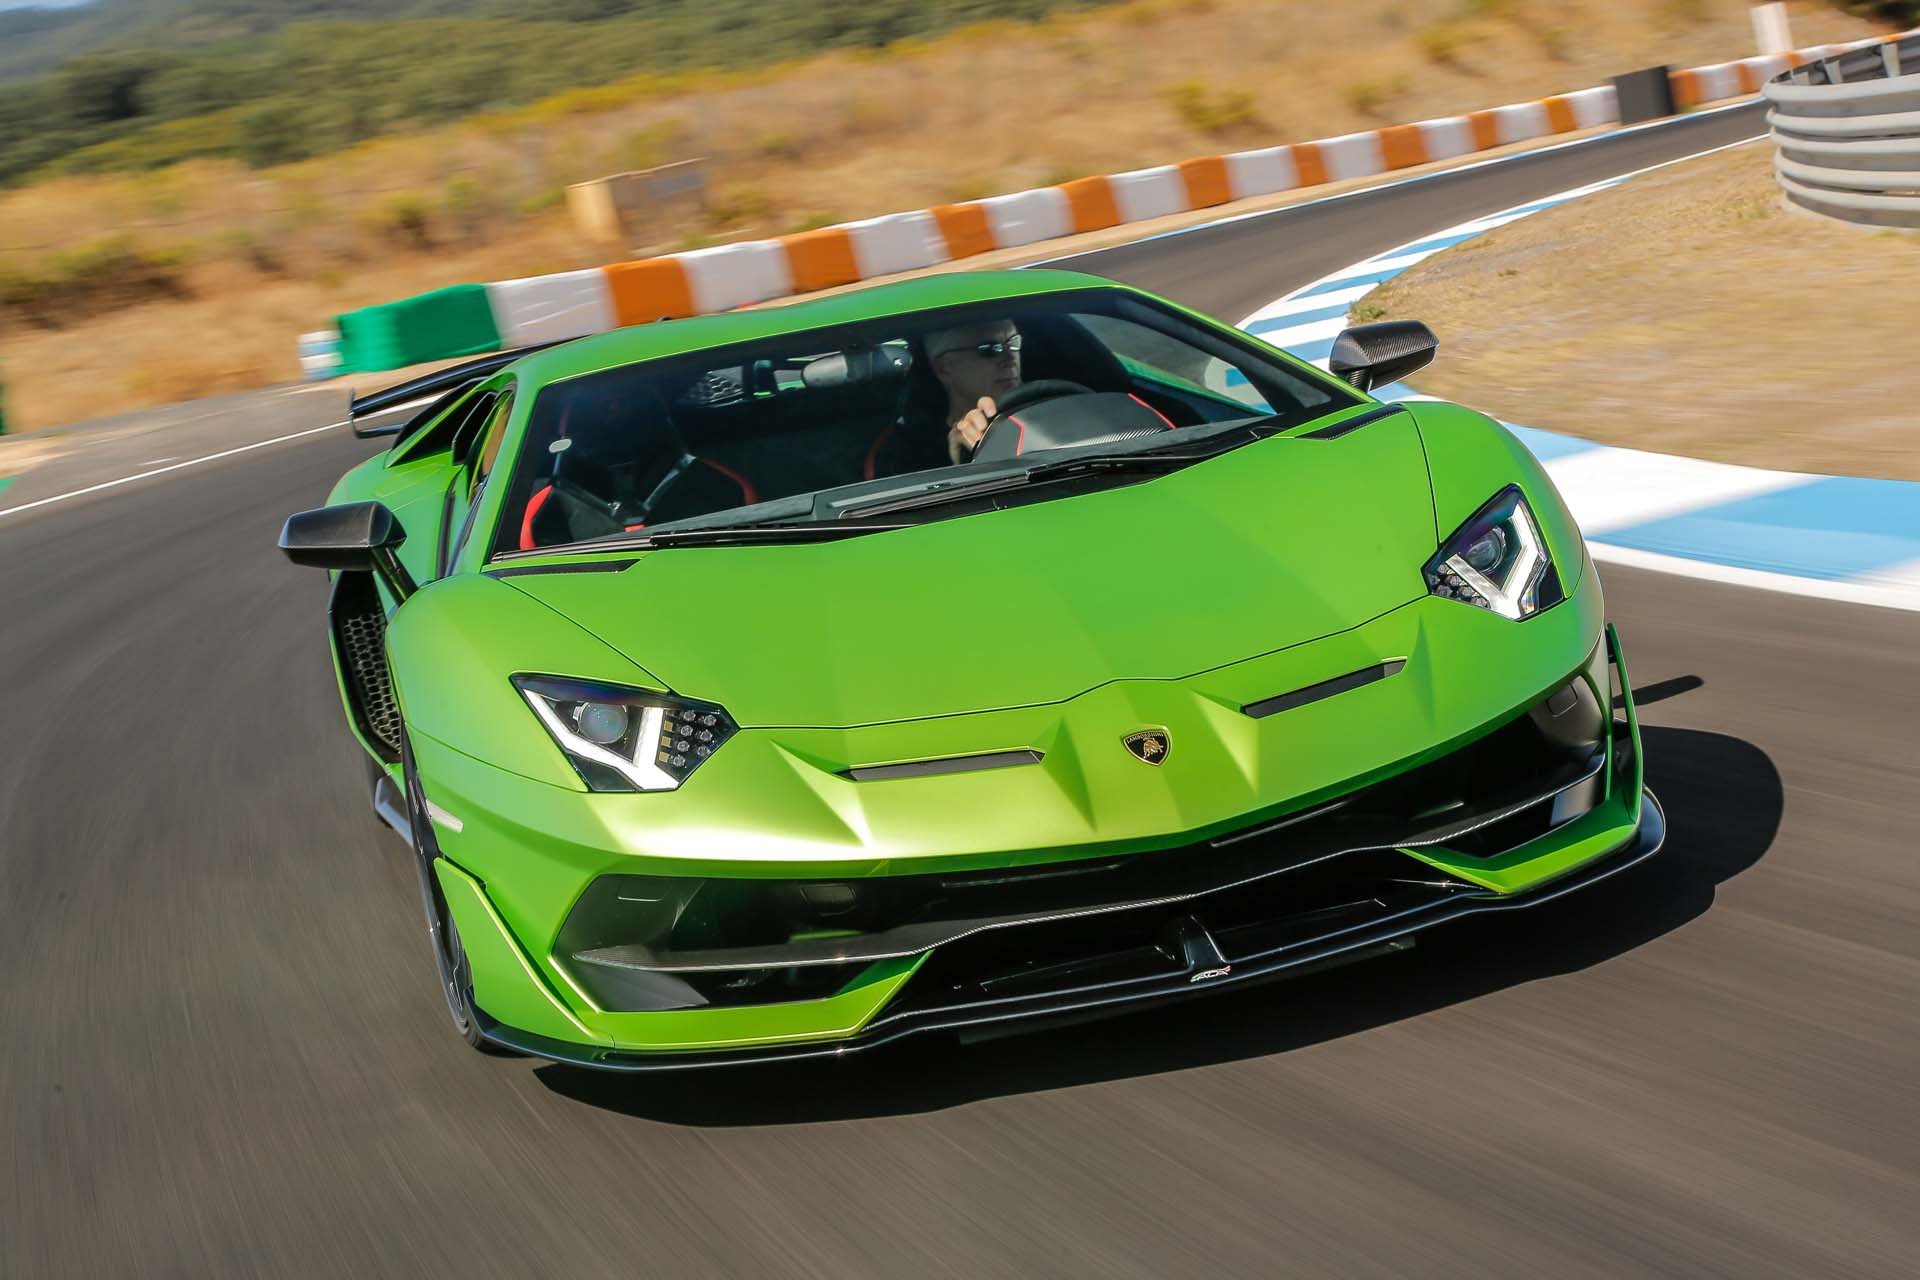 Lamborghini Miura Price >> 2019 Lamborghini Aventador SVJ first drive review: The life you save